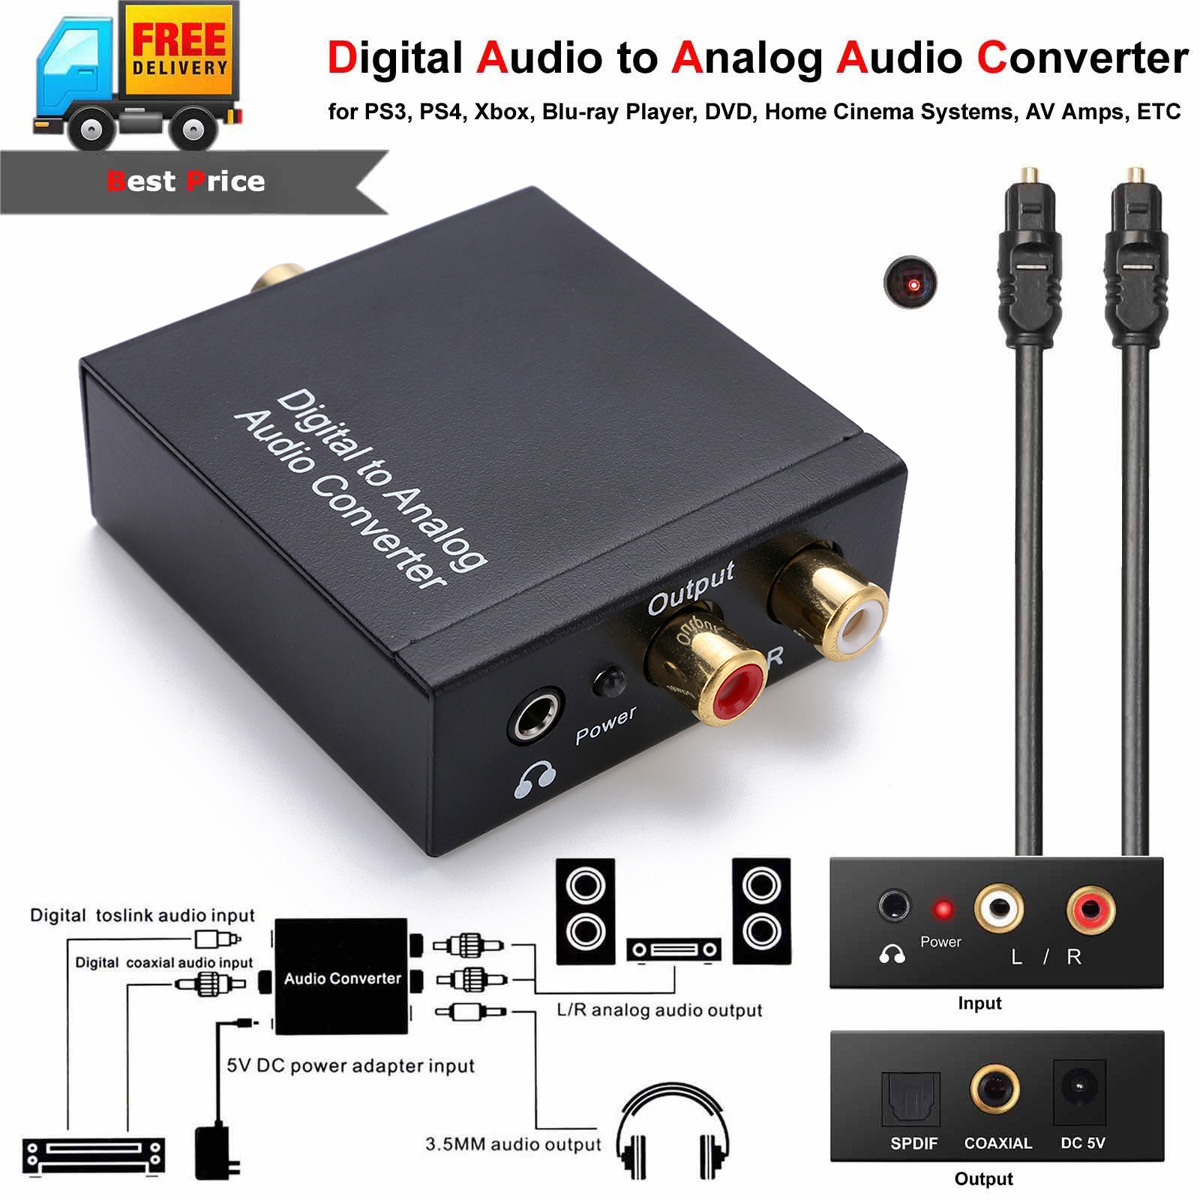 1m <font><b>Optical</b></font> Coaxial Toslink <font><b>Cable</b></font> Digital to Analog <font><b>Audio</b></font> Converter Adapter With AUX <font><b>3.5mm</b></font> <font><b>Jack</b></font> image